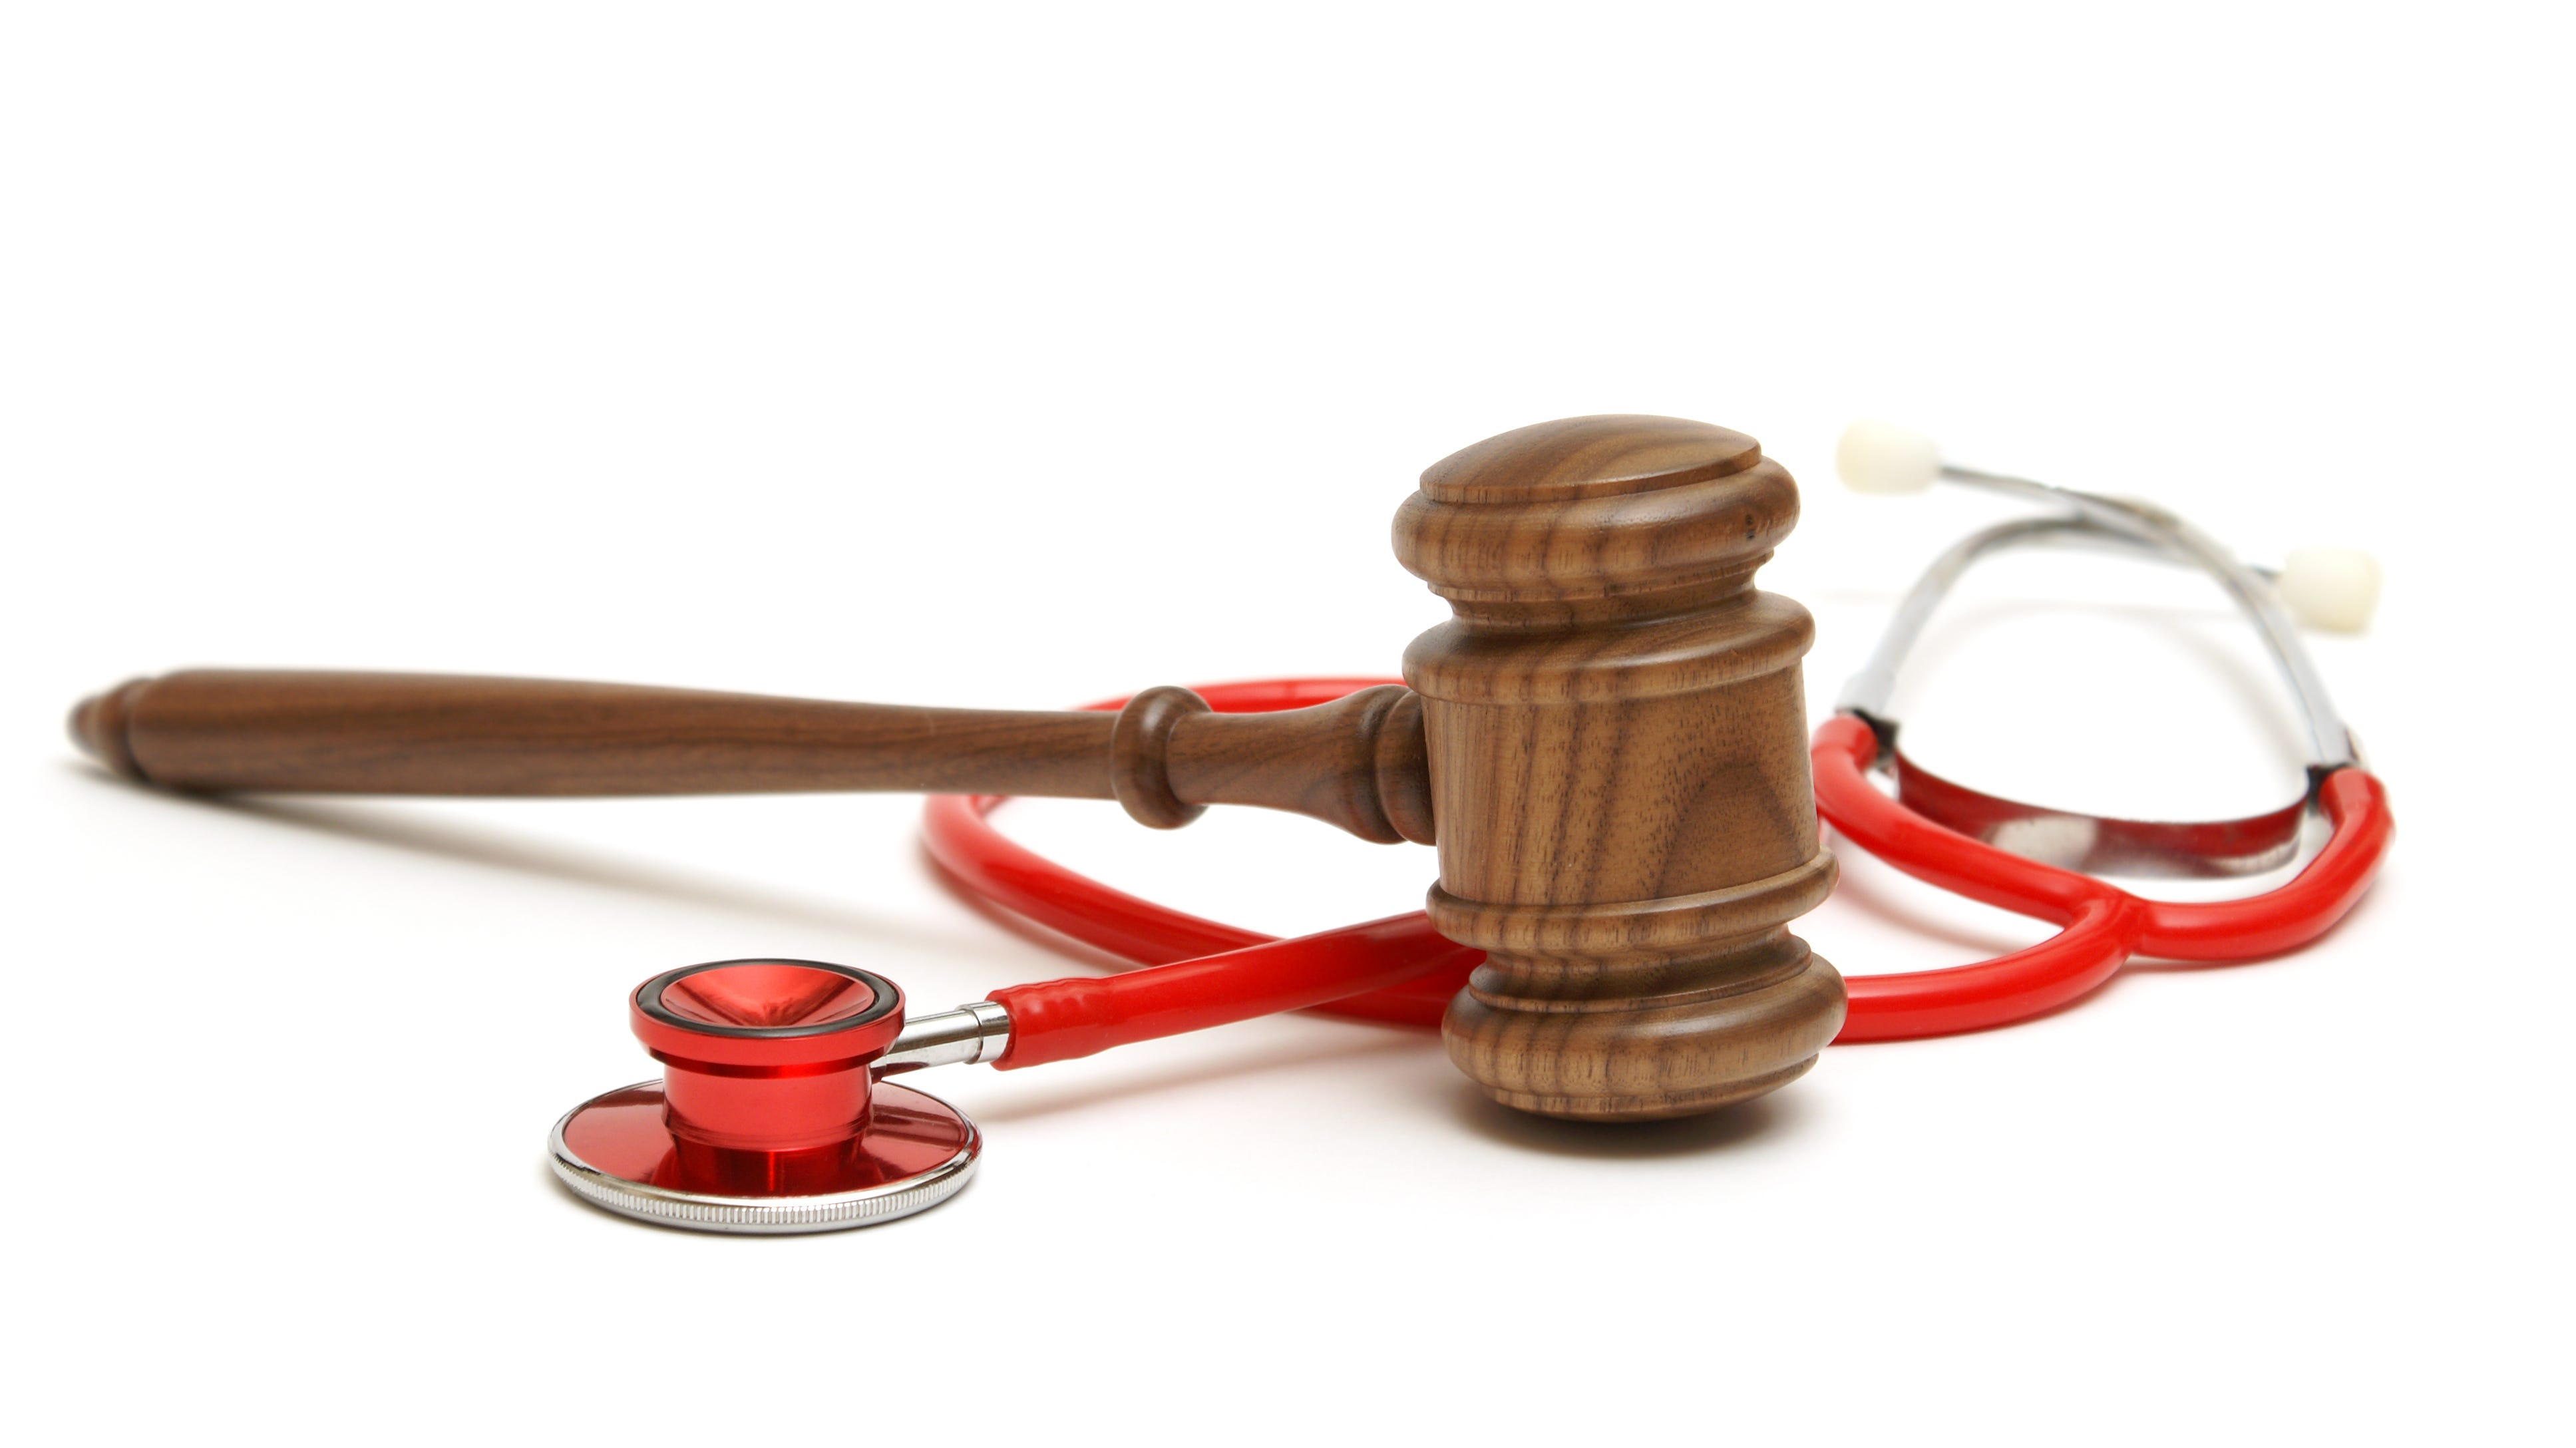 Eye Centers of Florida to pay $525,000 to settle Medicare fraud case